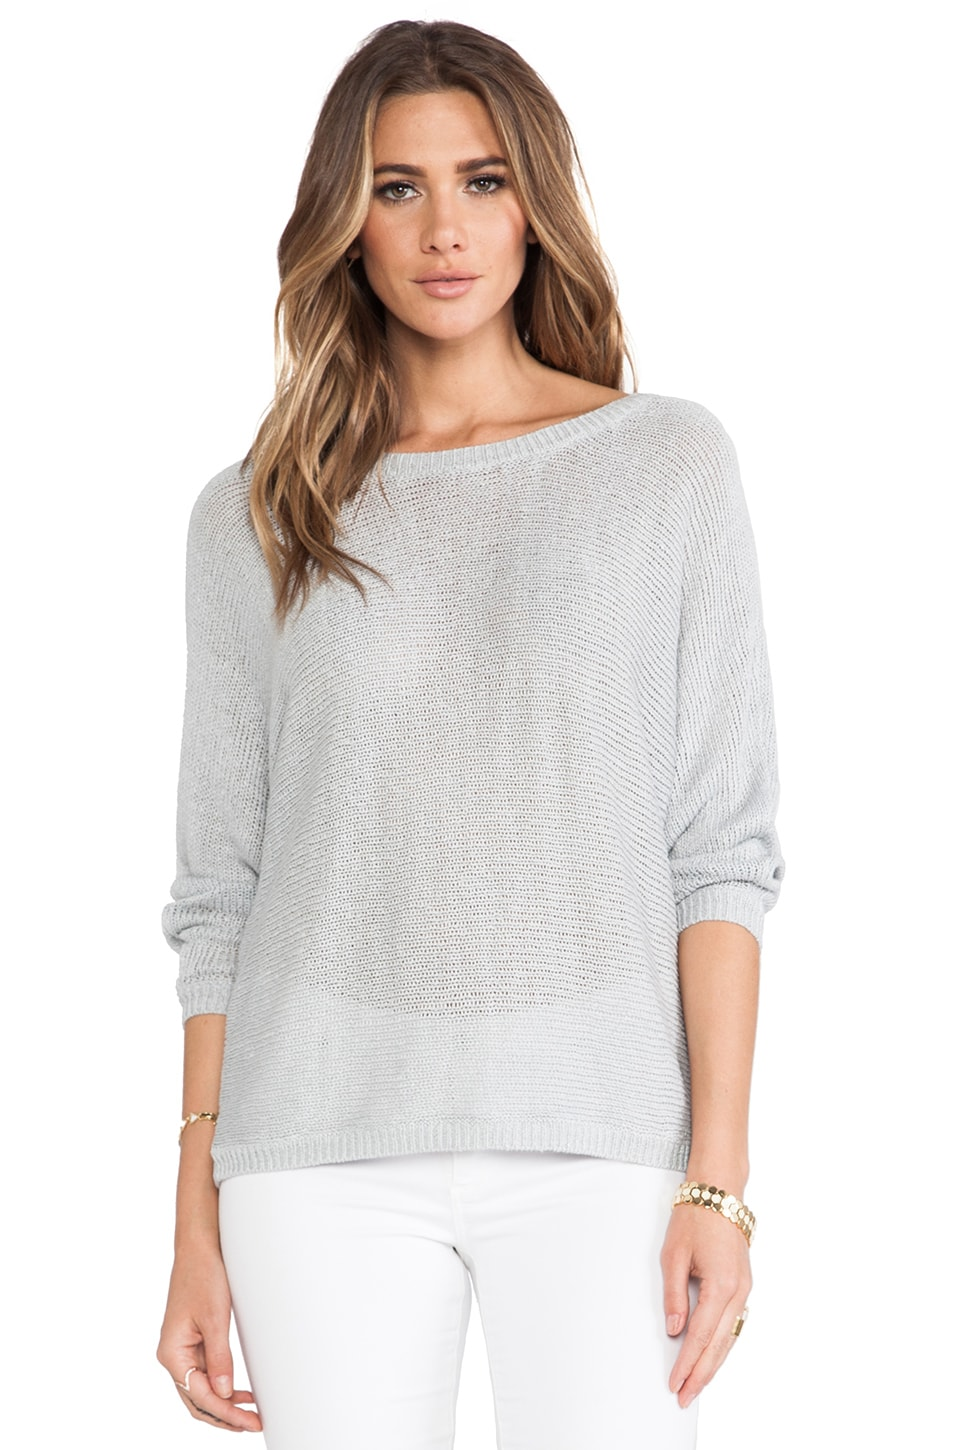 Joie Emilie Sweater in Silver Fox